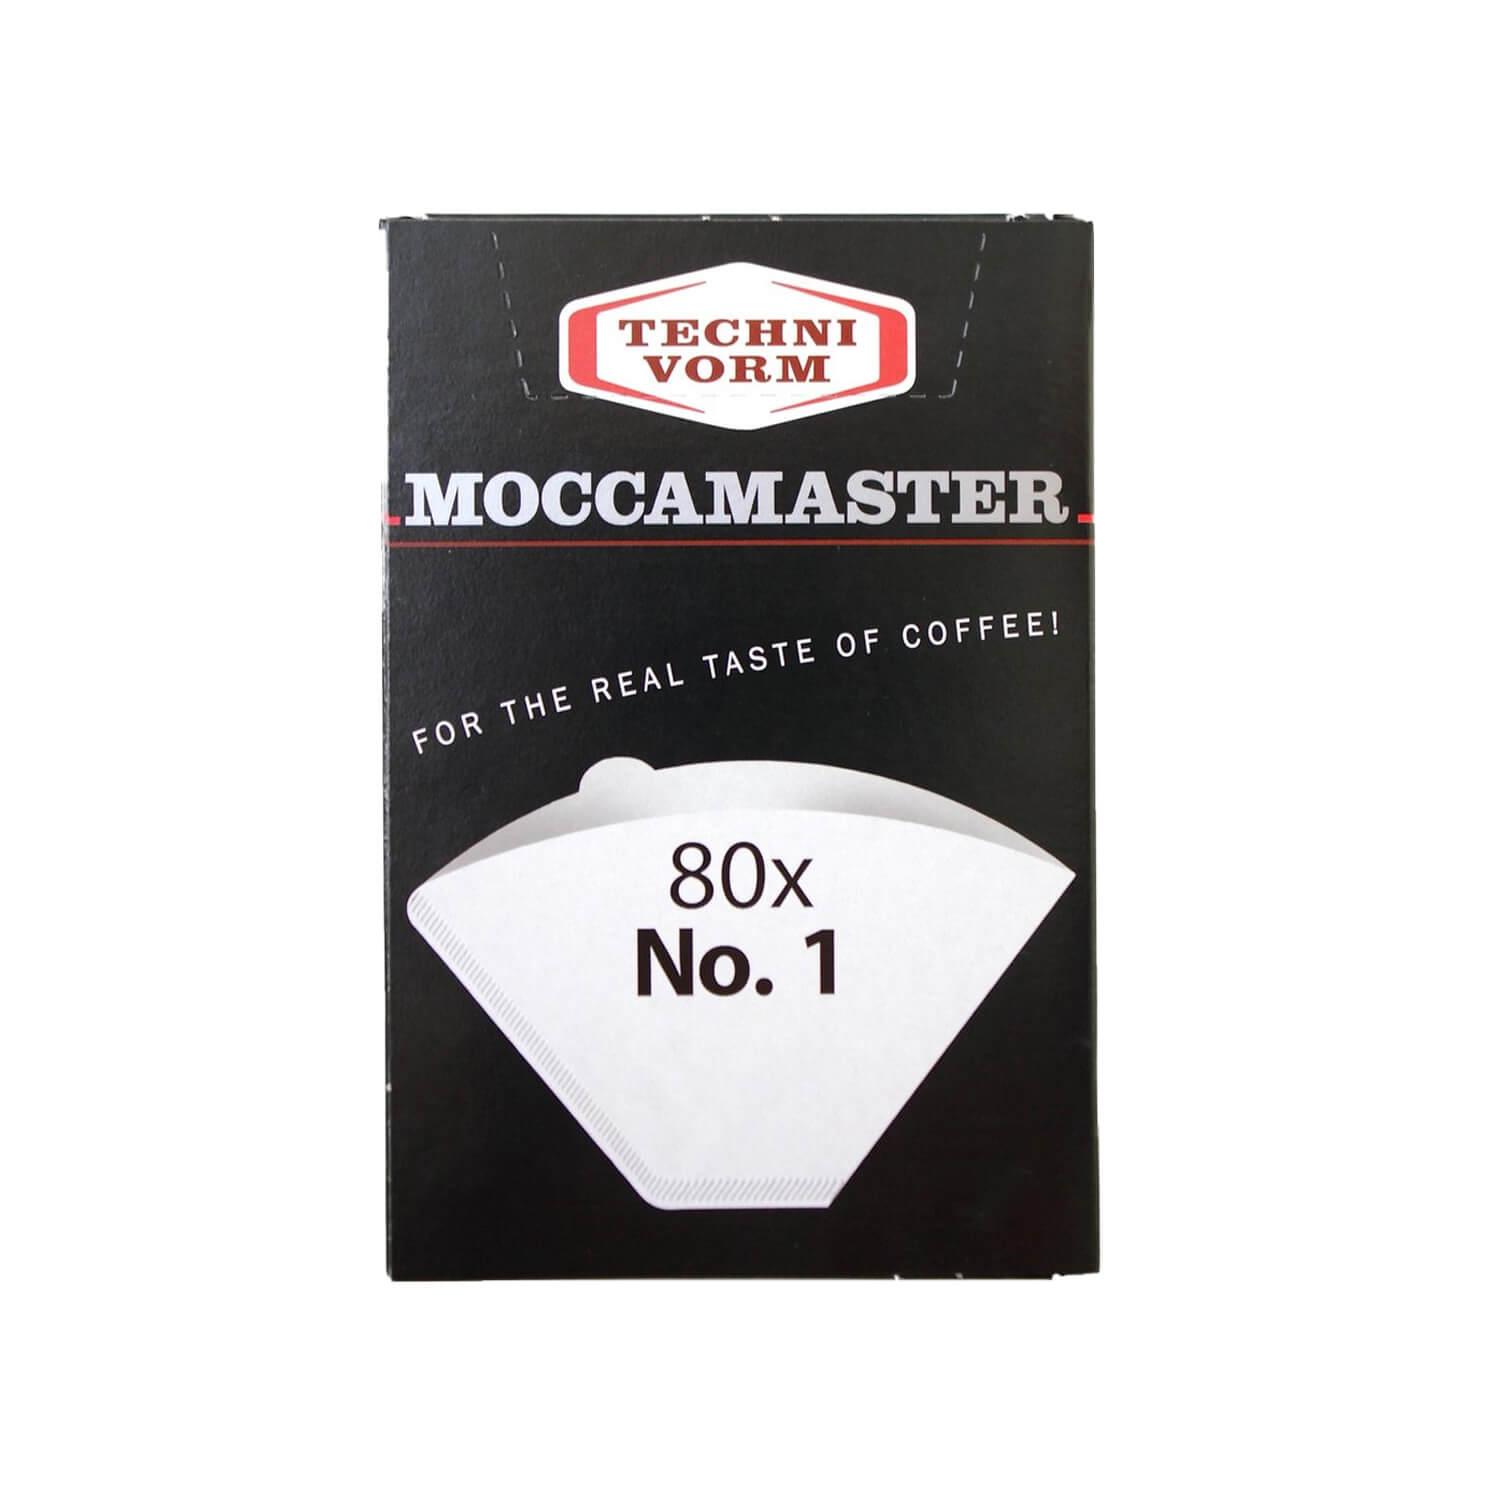 Moccamaster - Filterzakjes - nr. 1 Cup-one - 80 st